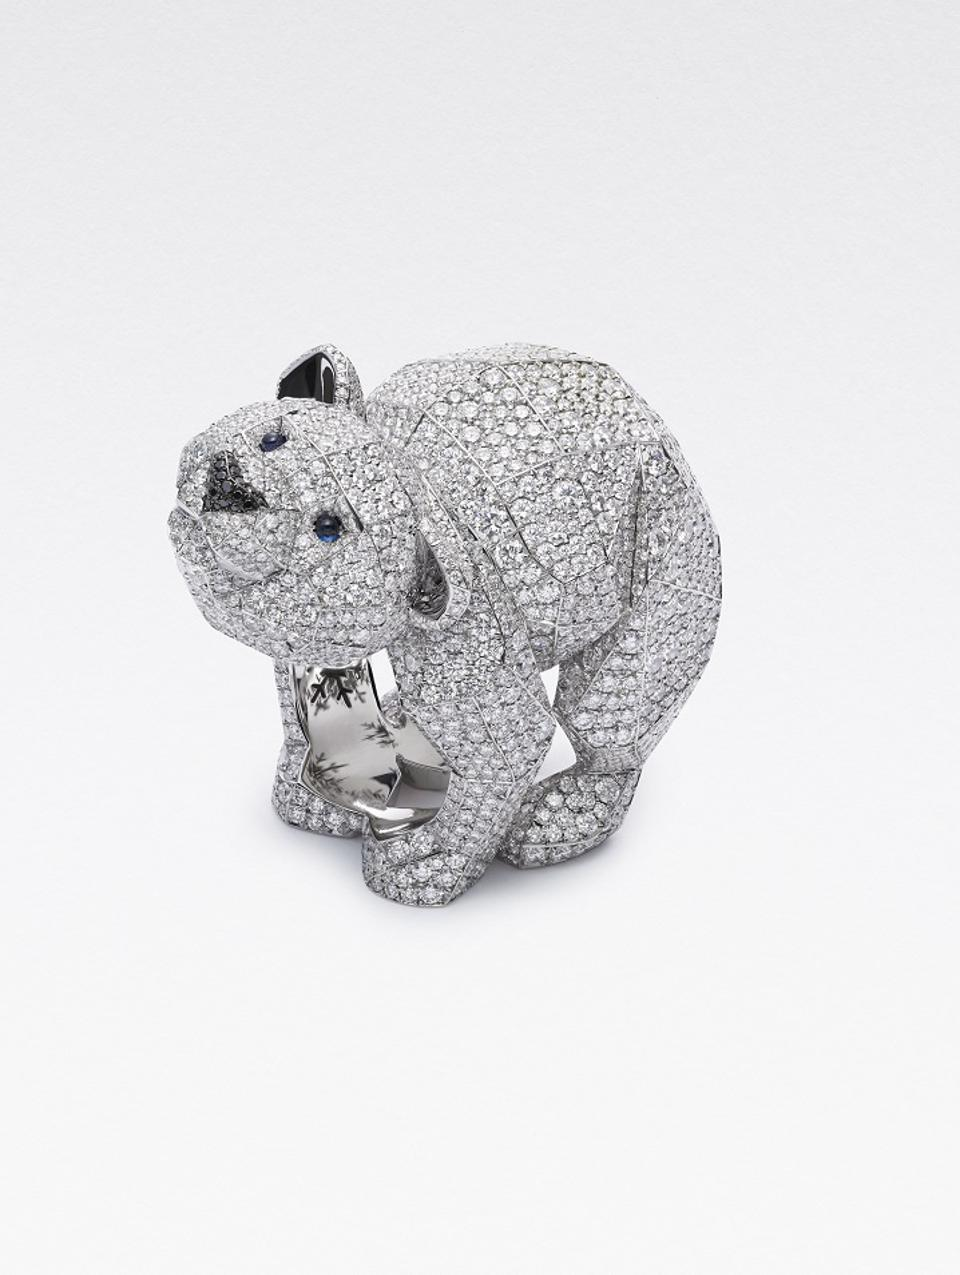 Chopard Polar Bear Ring from the 2020 Red Carpet Collection